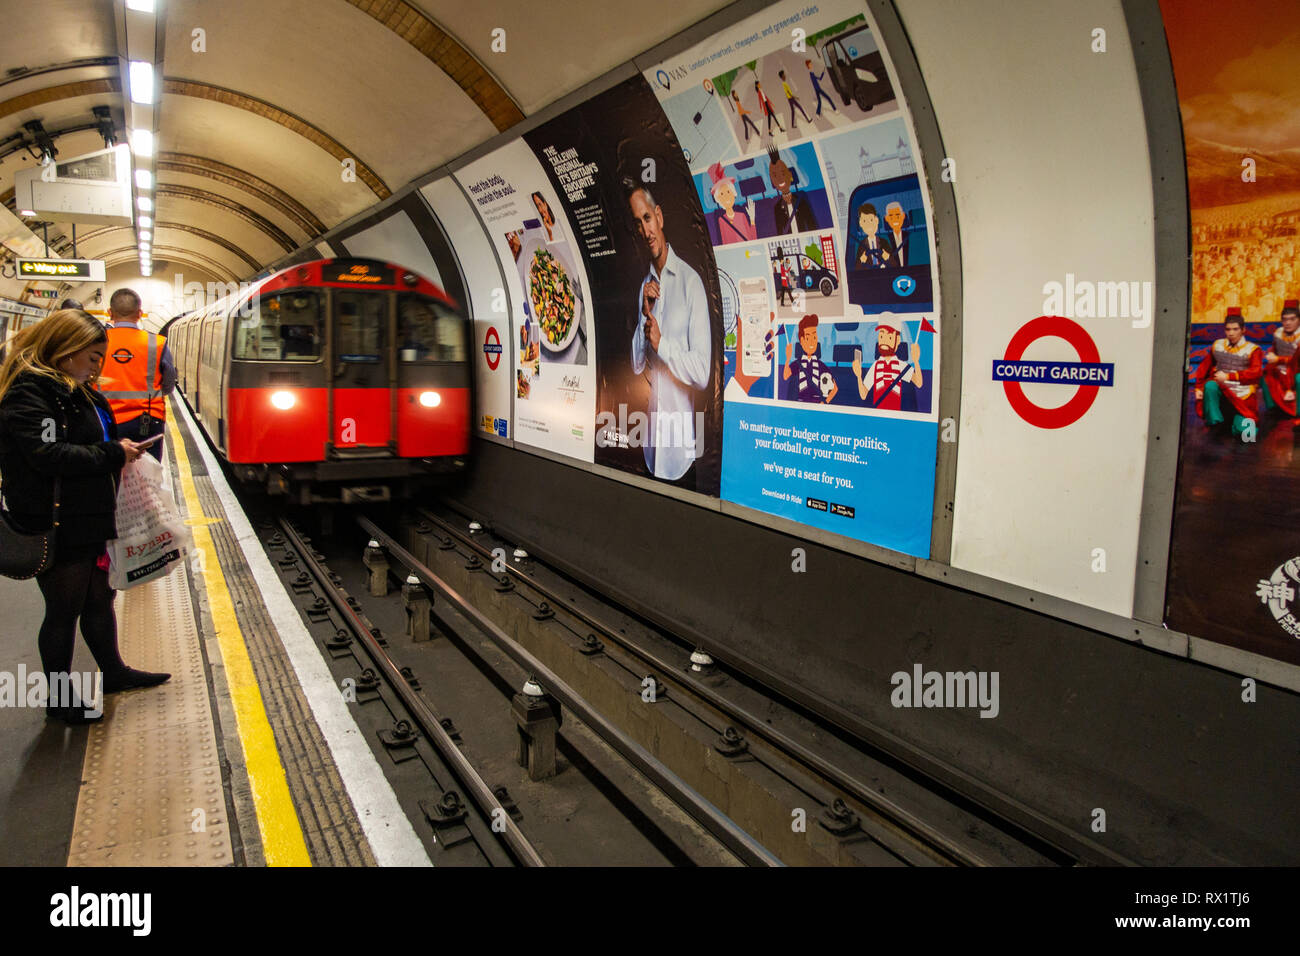 Female Commuter waits for the approaching tube train on london underground track with ad poster - Stock Image